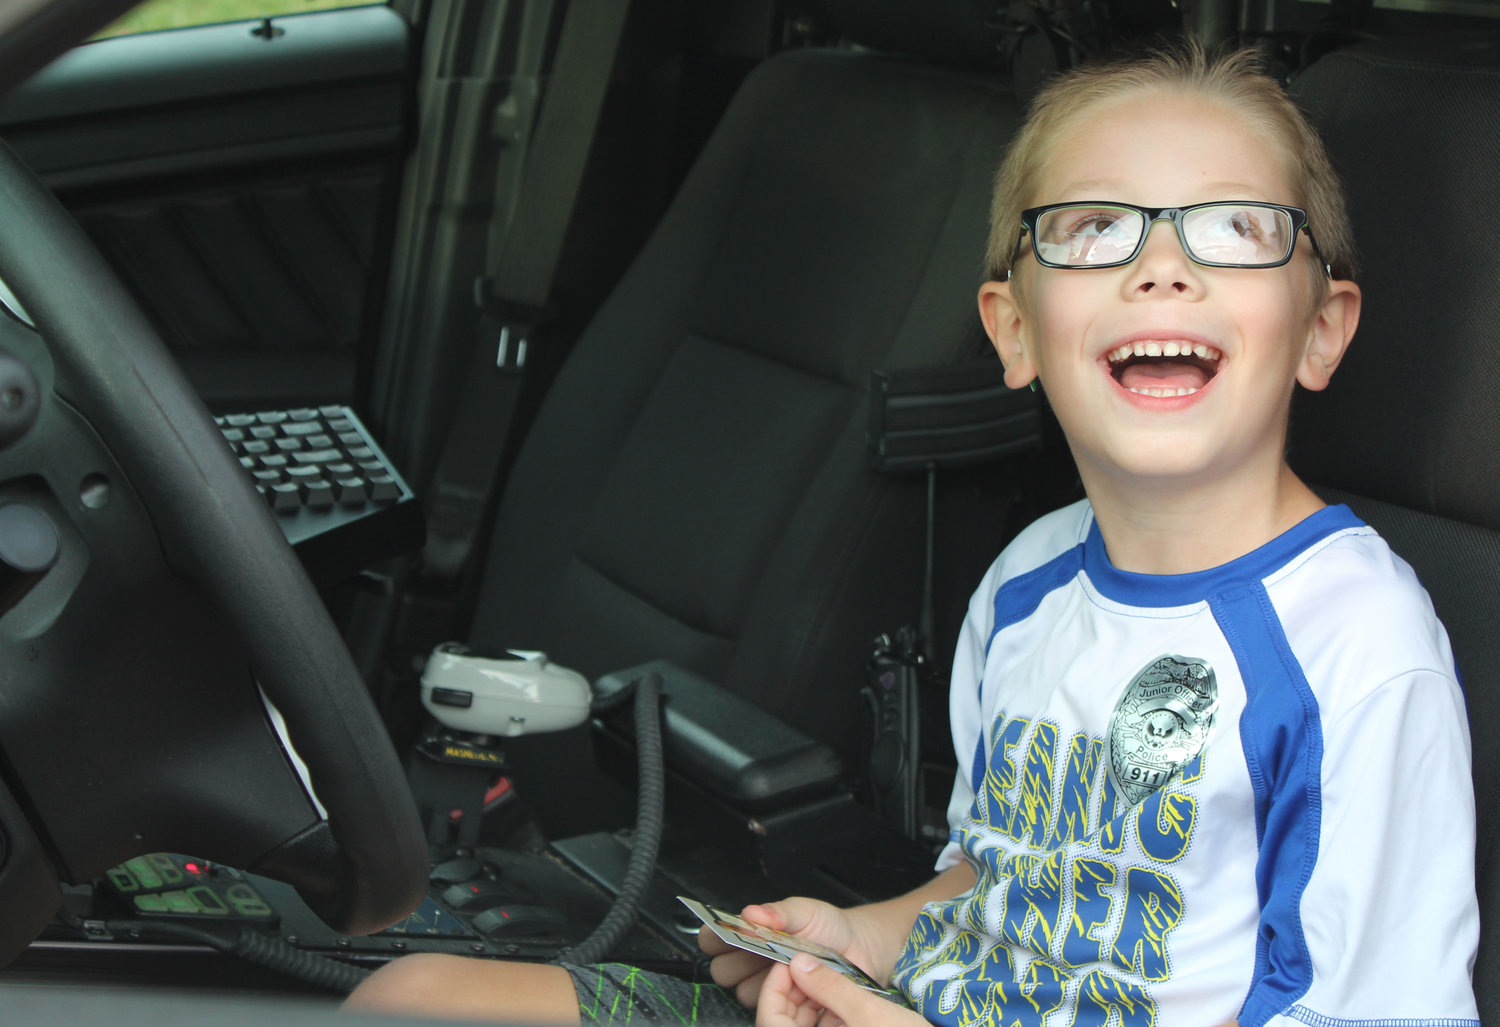 Corsair Billy is all smiles after Lower Swatara Police Chief Jeff Vargo lets him sit in his patrol car during National Night Out on Aug. 6.